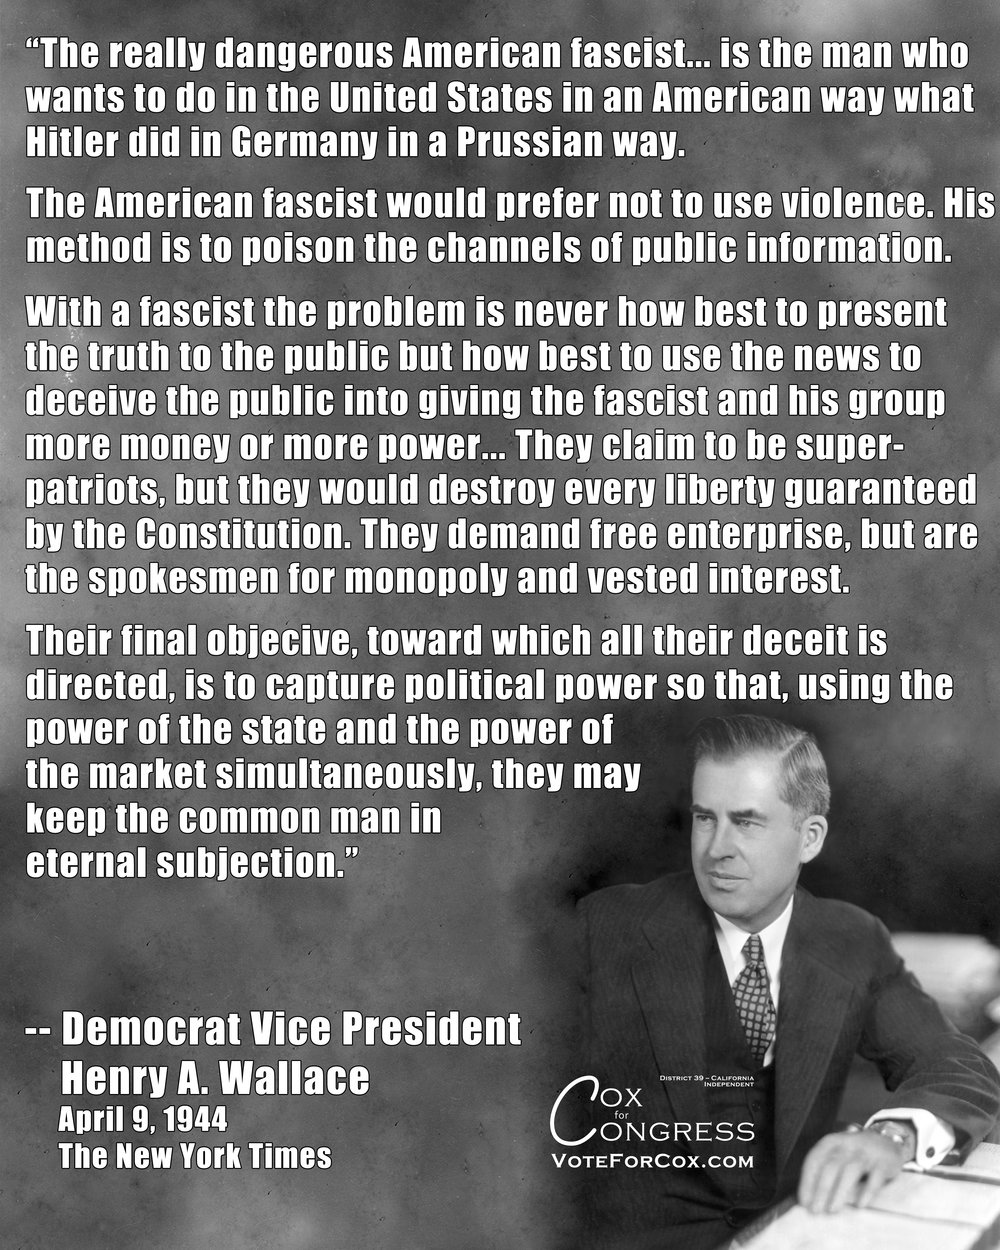 "Franklin D. Roosevelt's VP from 1941-1945 was, soon after this, removed from being FDR's running mate for re-election by the Democratic Party at the Democratic Convention in July of 1944, because he was ""too progressive"" and ""too friendly with labor"" to be next in line to the presidency as FDR's health continued to decline. He was replaced by Harry Truman, who was deemed more conservative and more friendly to business interests."